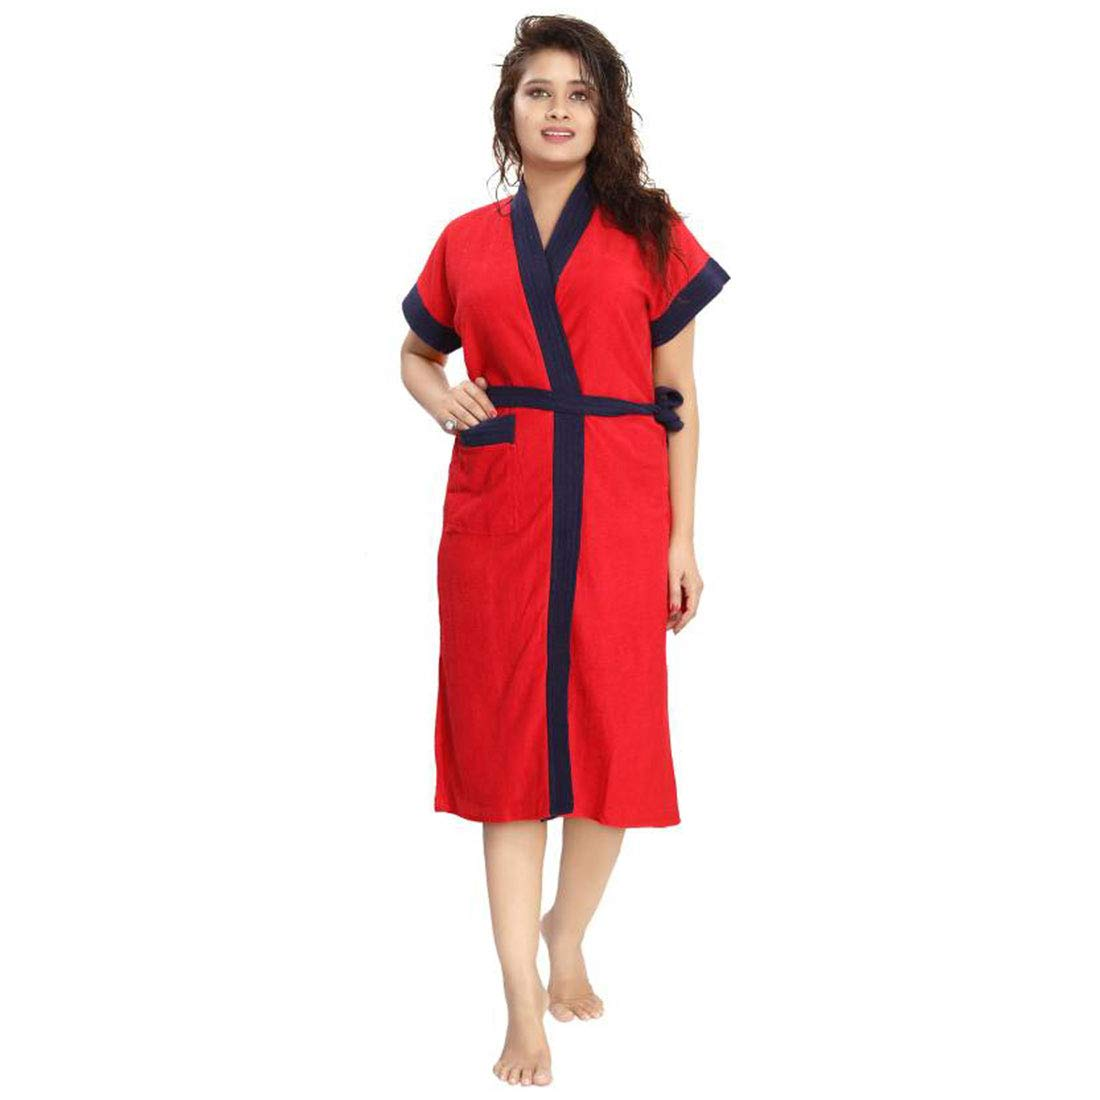 Poorak Two Tone Cotton Half Sleeves Bathrobe for Women - Free Size fit Upto 44 inches - Red (B07JND834D) Amazon Price History, Amazon Price Tracker